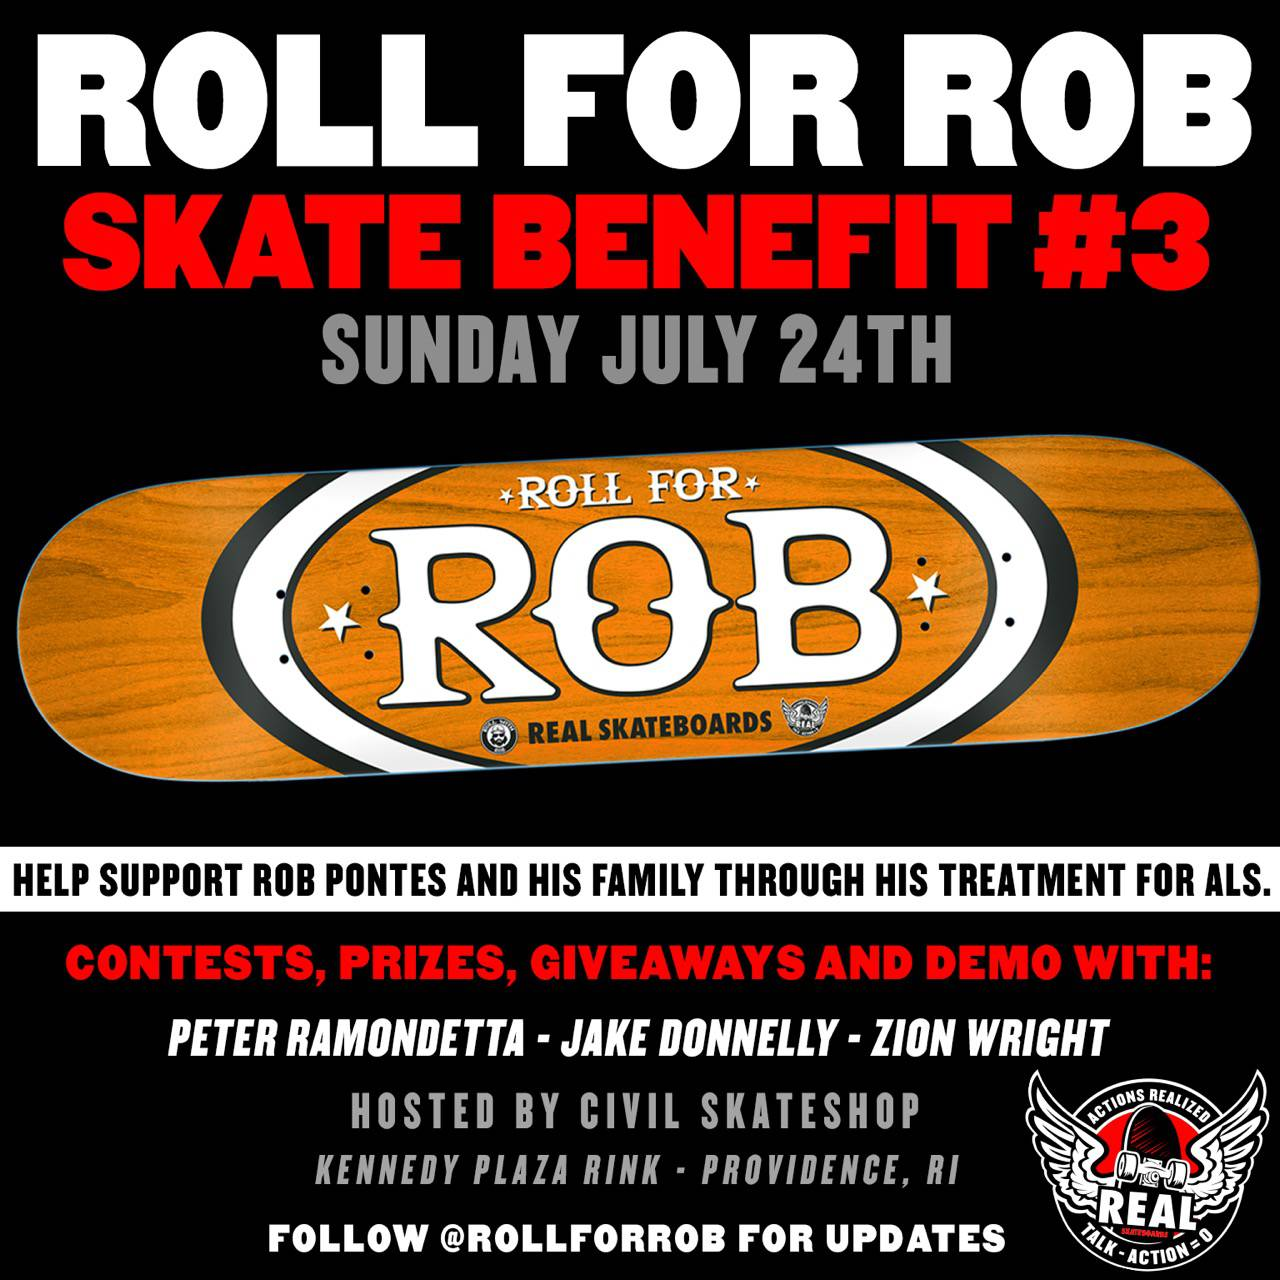 Roll For Rob -- Skate Benefit #3